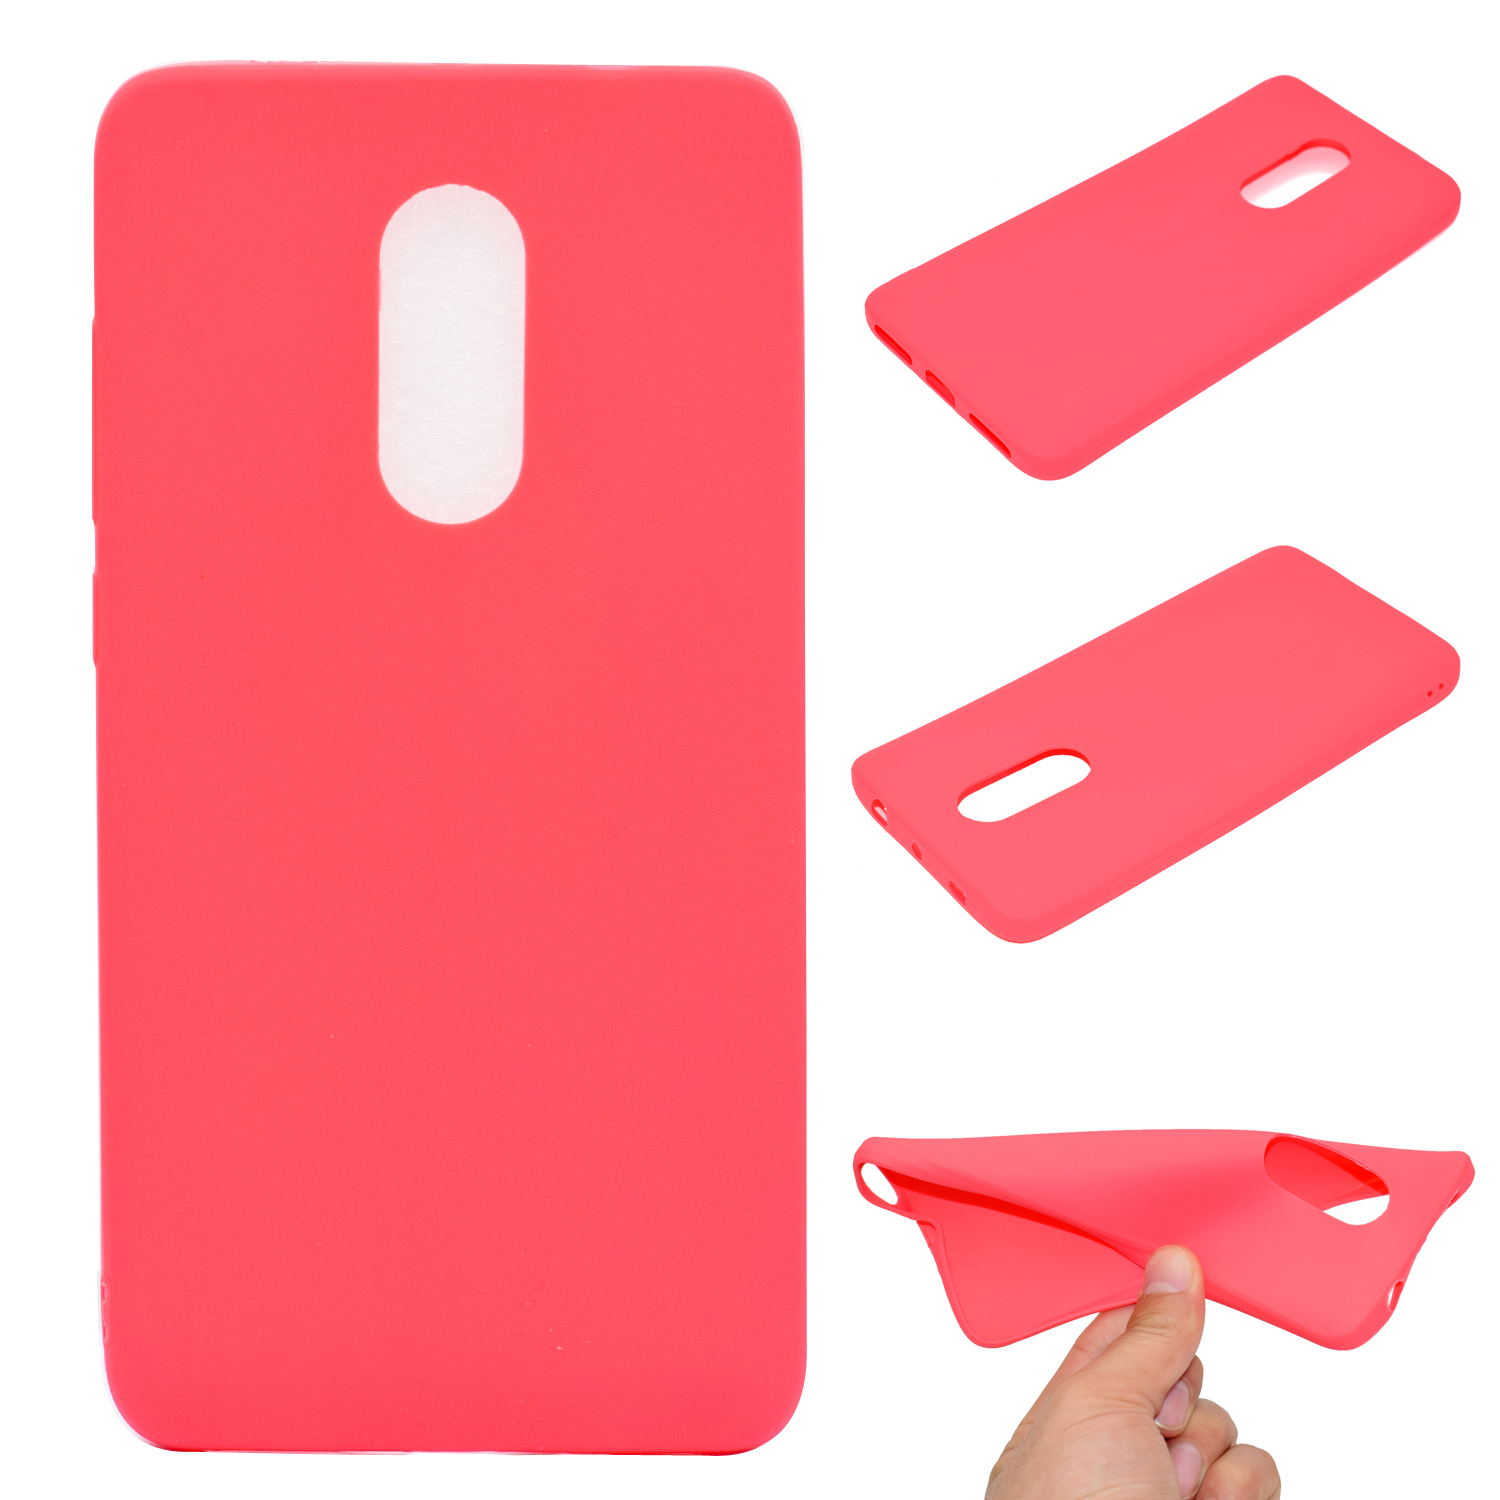 for XIAOMI Redmi NOTE 4X/NOTE 4 Lovely Candy Color Matte TPU Anti-scratch Non-slip Protective Cover Back Case red